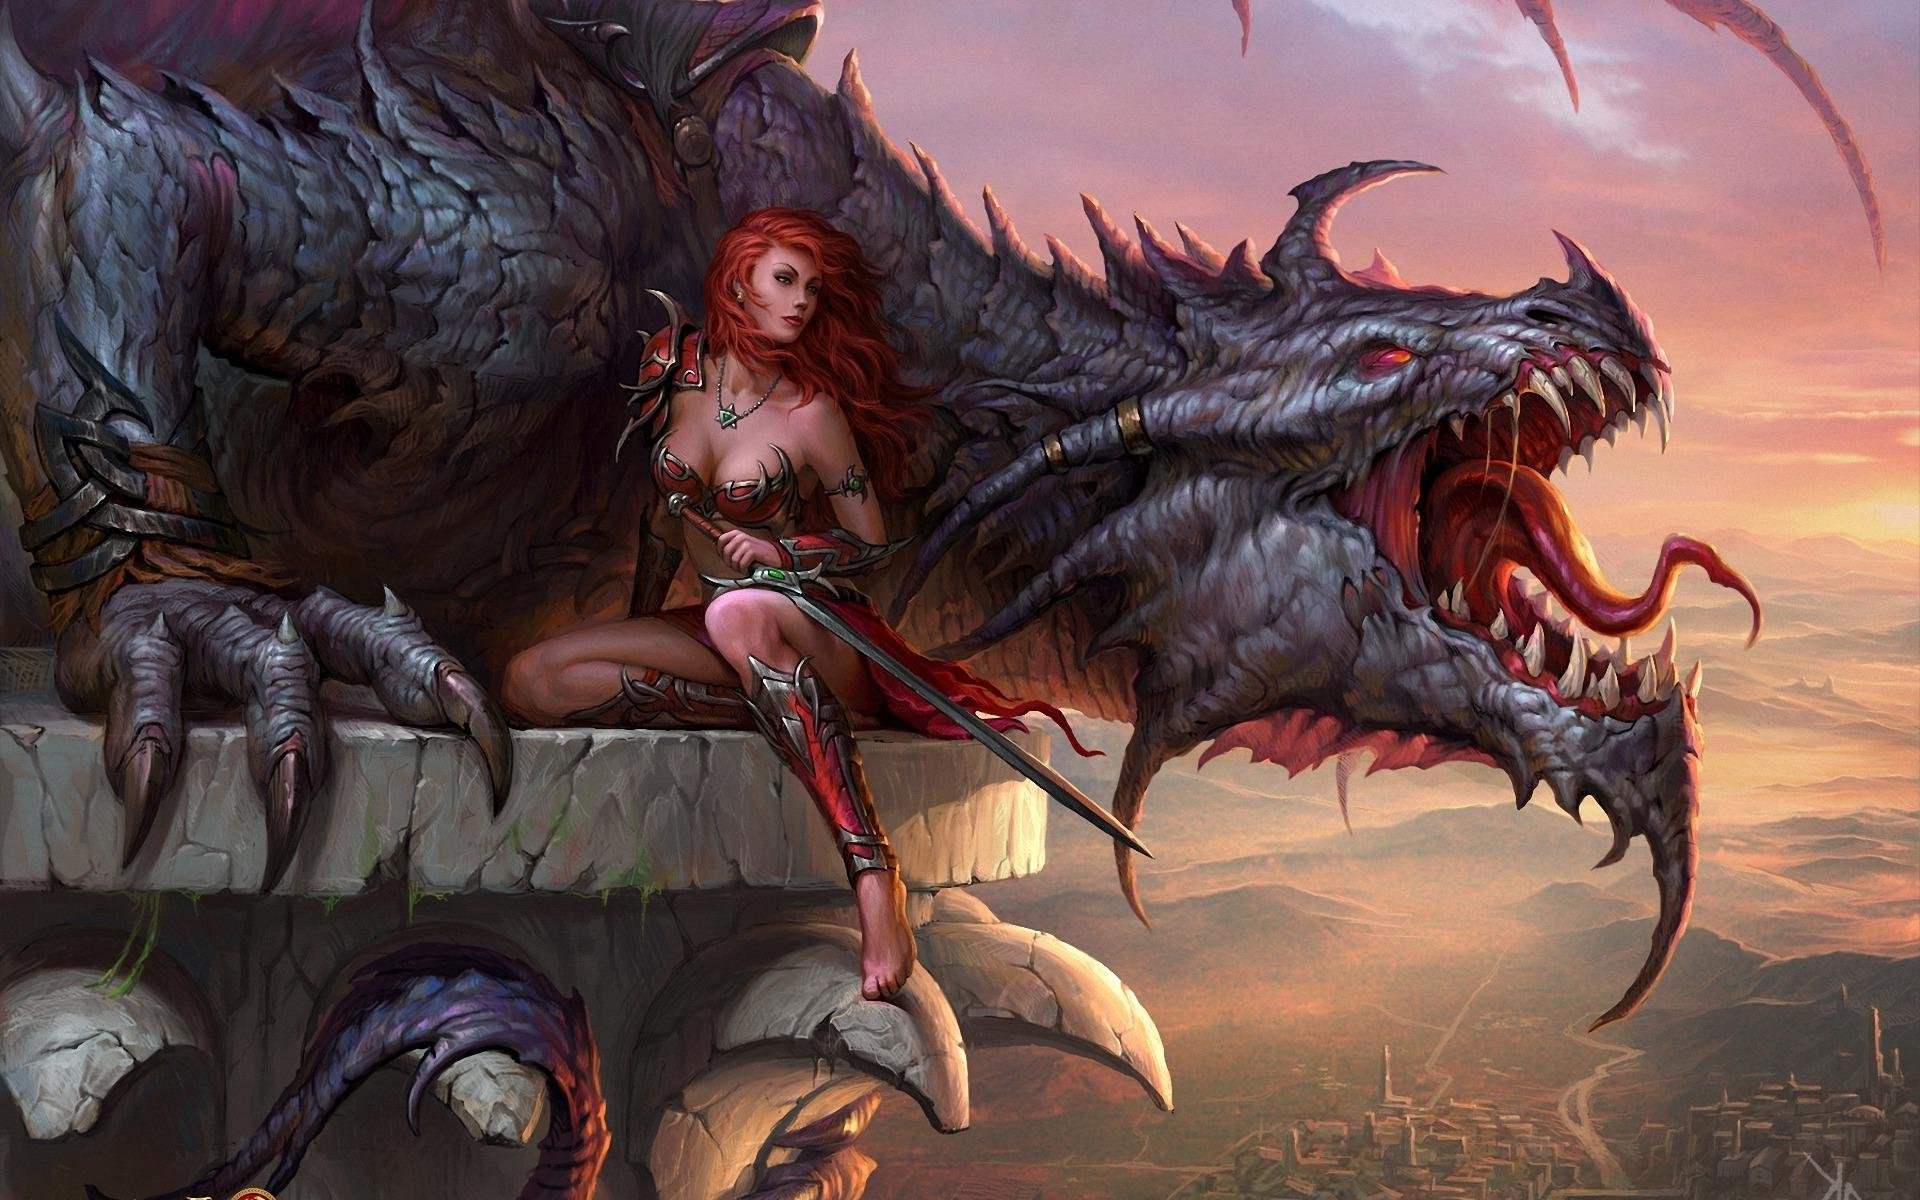 Dragons fantasy dragon art artwork wallpaper | 1920x1200 ...